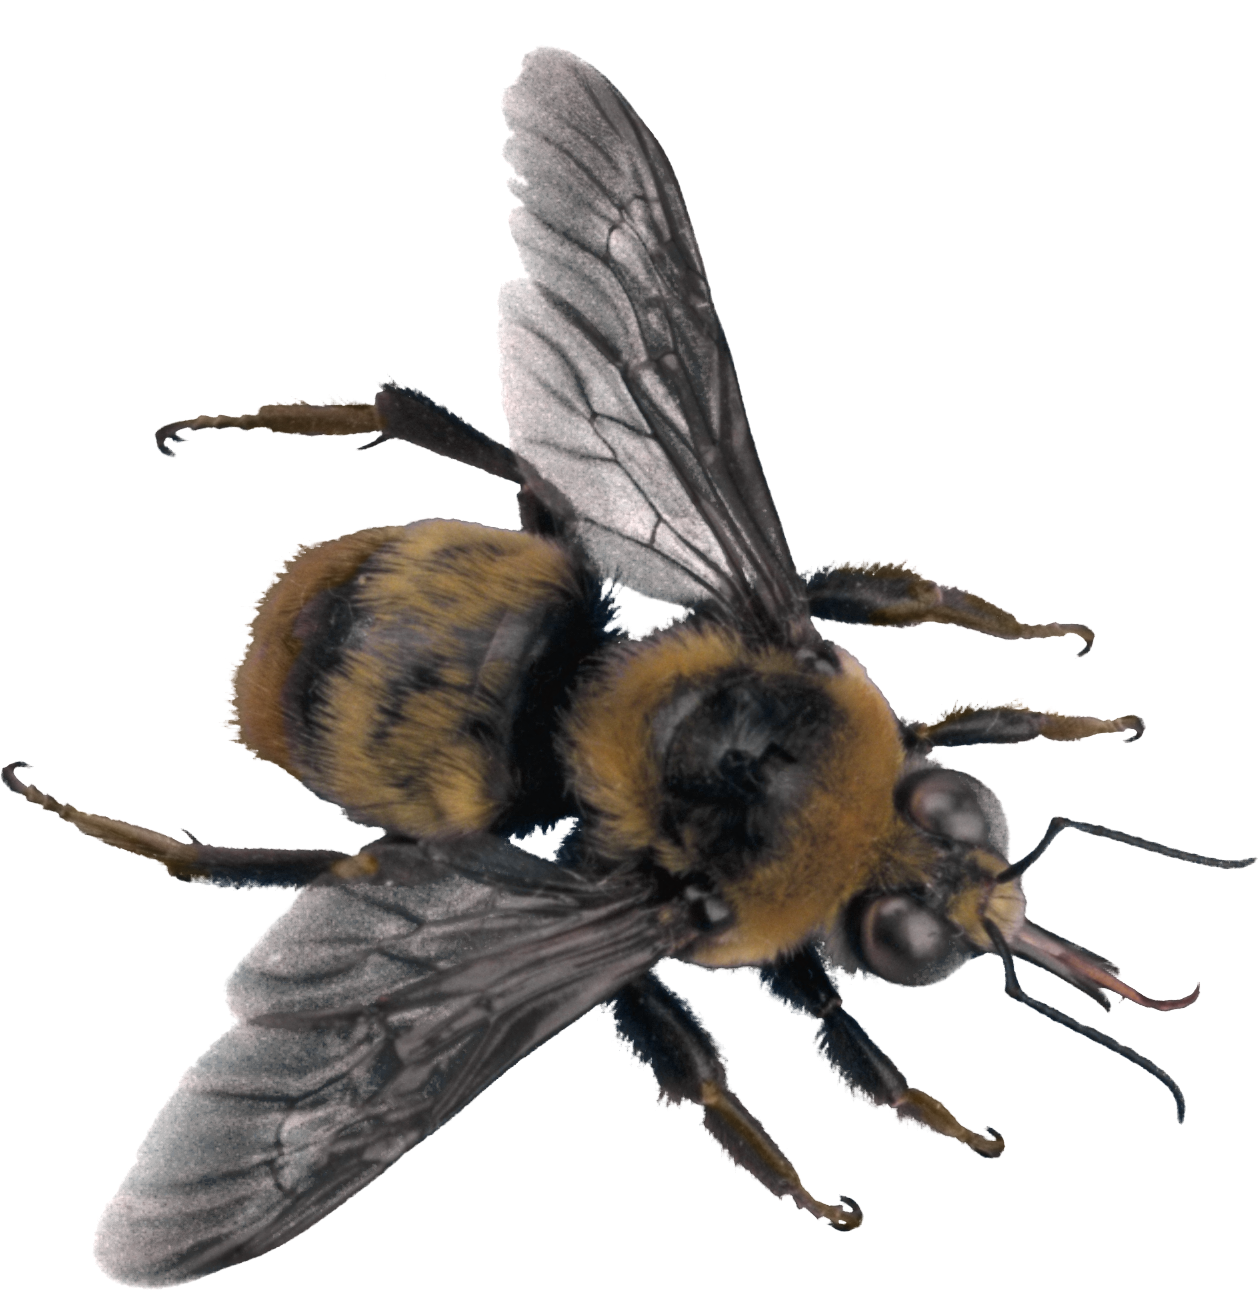 Bees transparent background. Bee png image